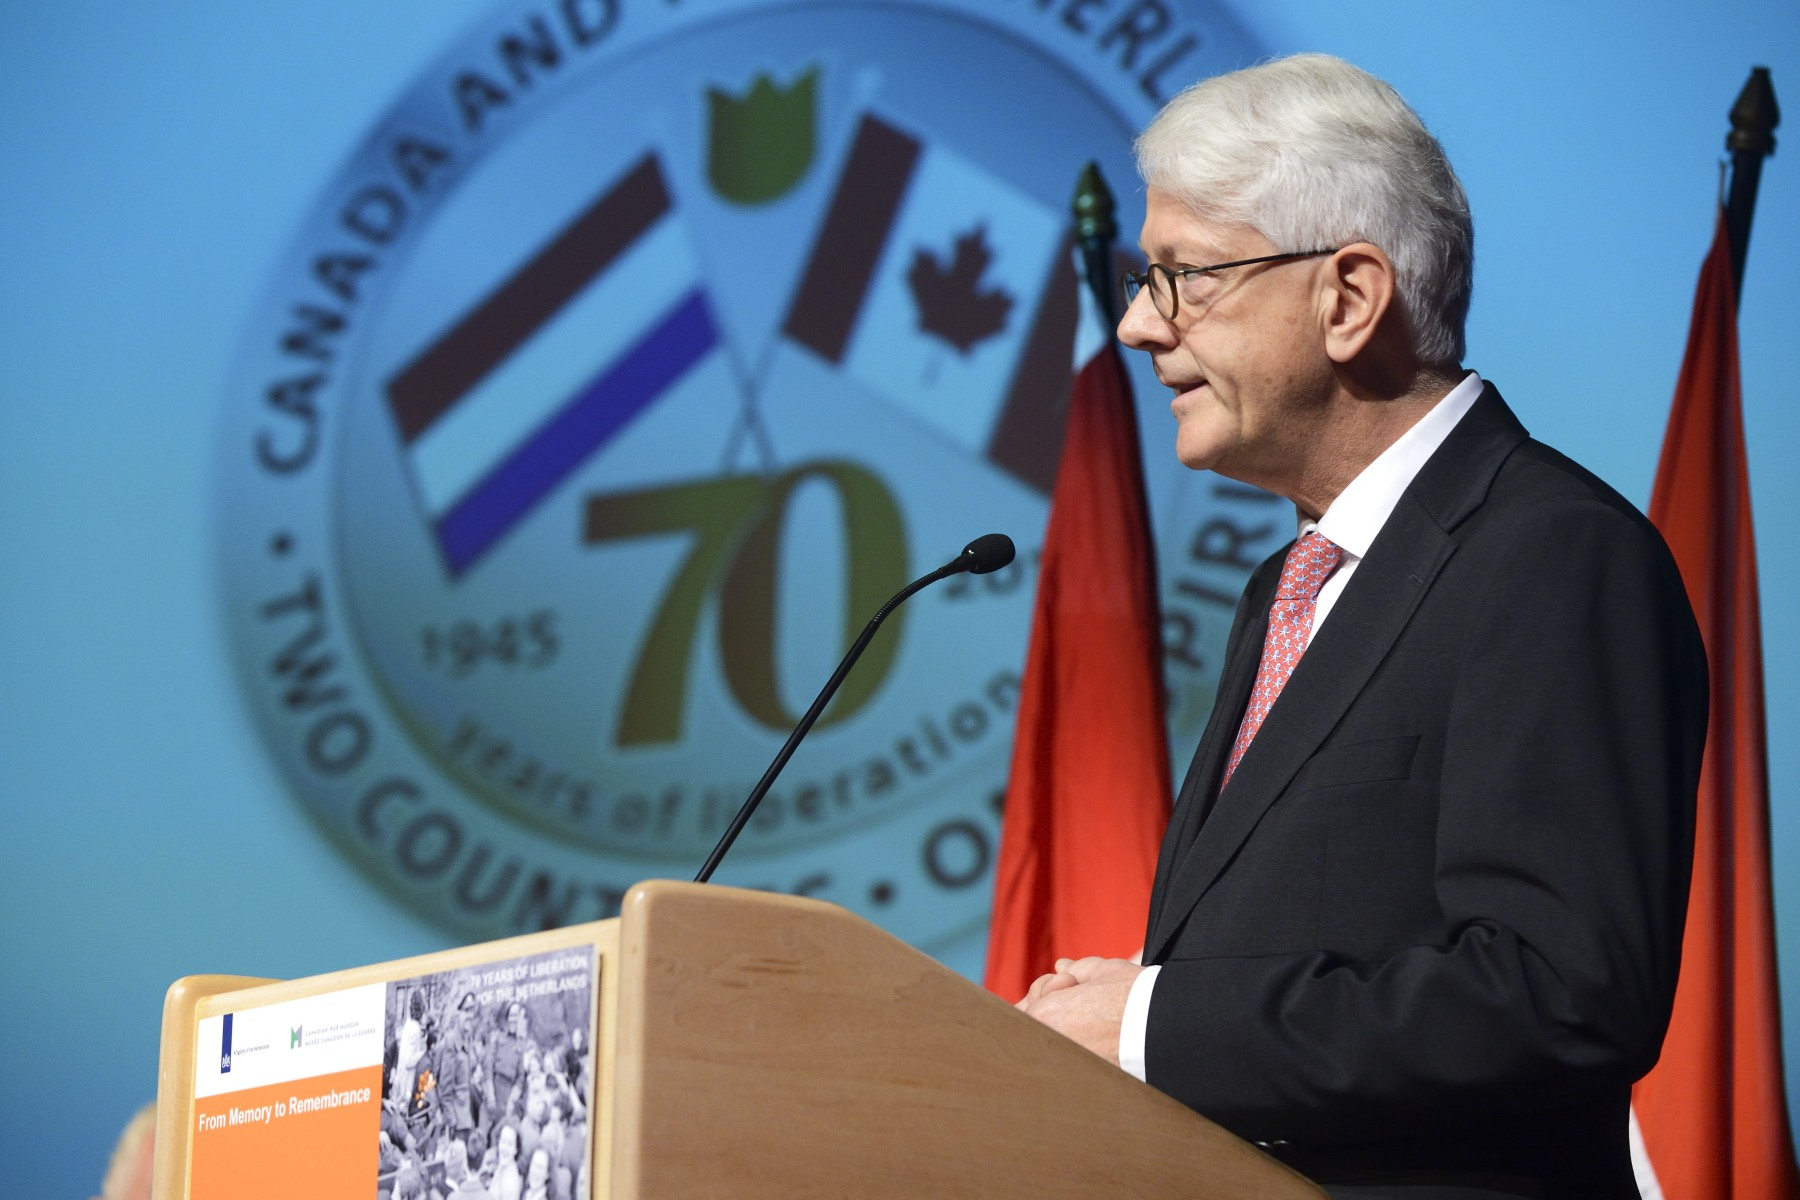 The first seminar of the From Memory to Remembrance lecture series took place at the Canadian War Museum, on October 16, 2014. On this occasion, His Excellency Cees Kole, Ambassador of the Kingdom of the Netherlands, delivered remarks.